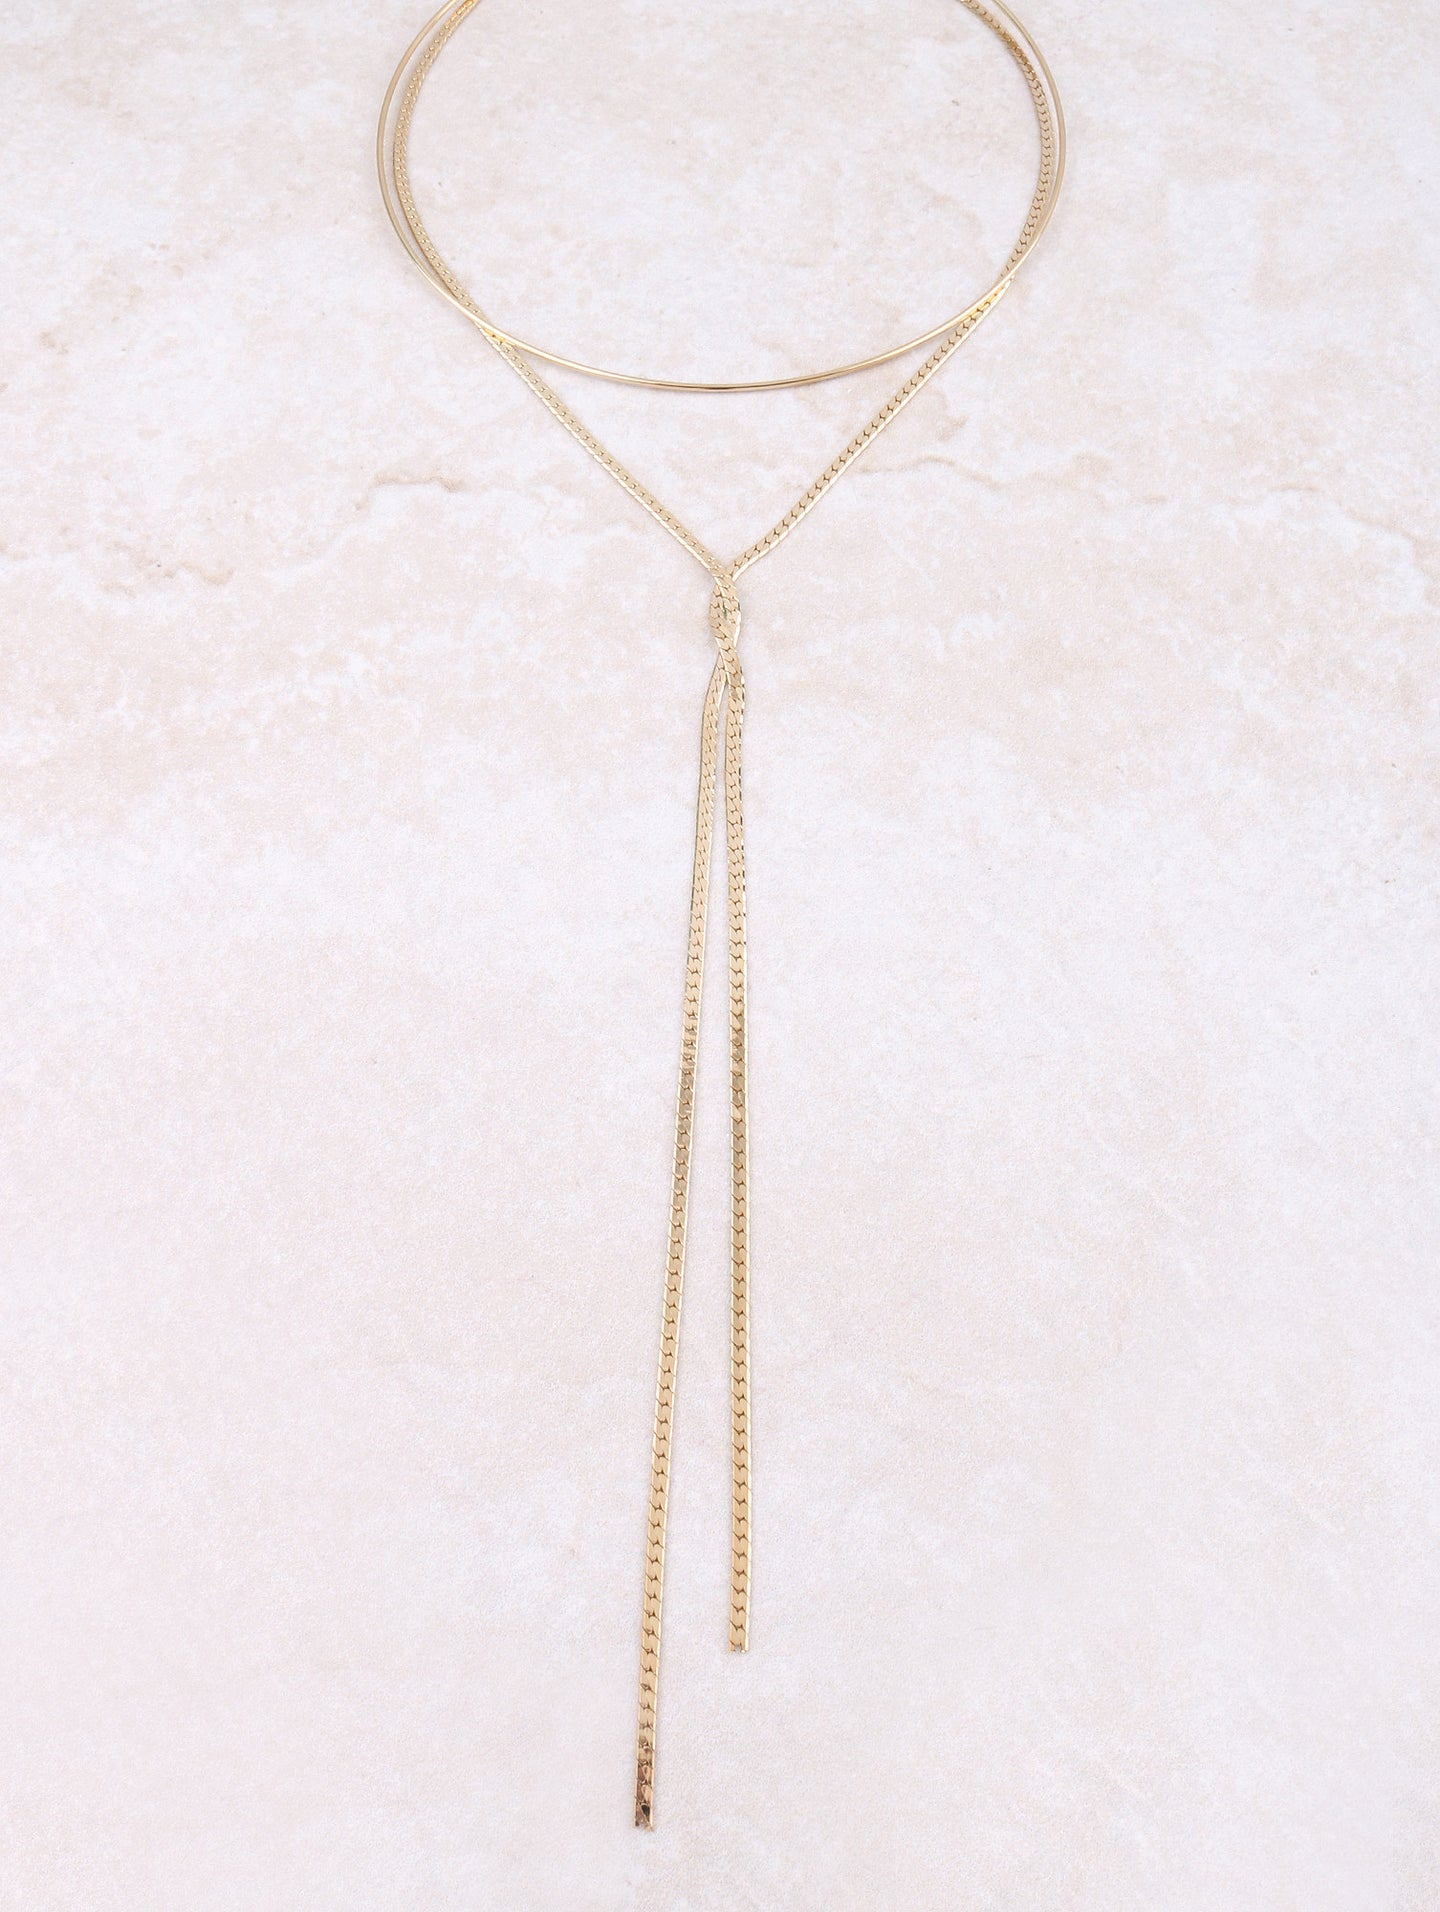 X Collar Necklace Anarchy Street Gold